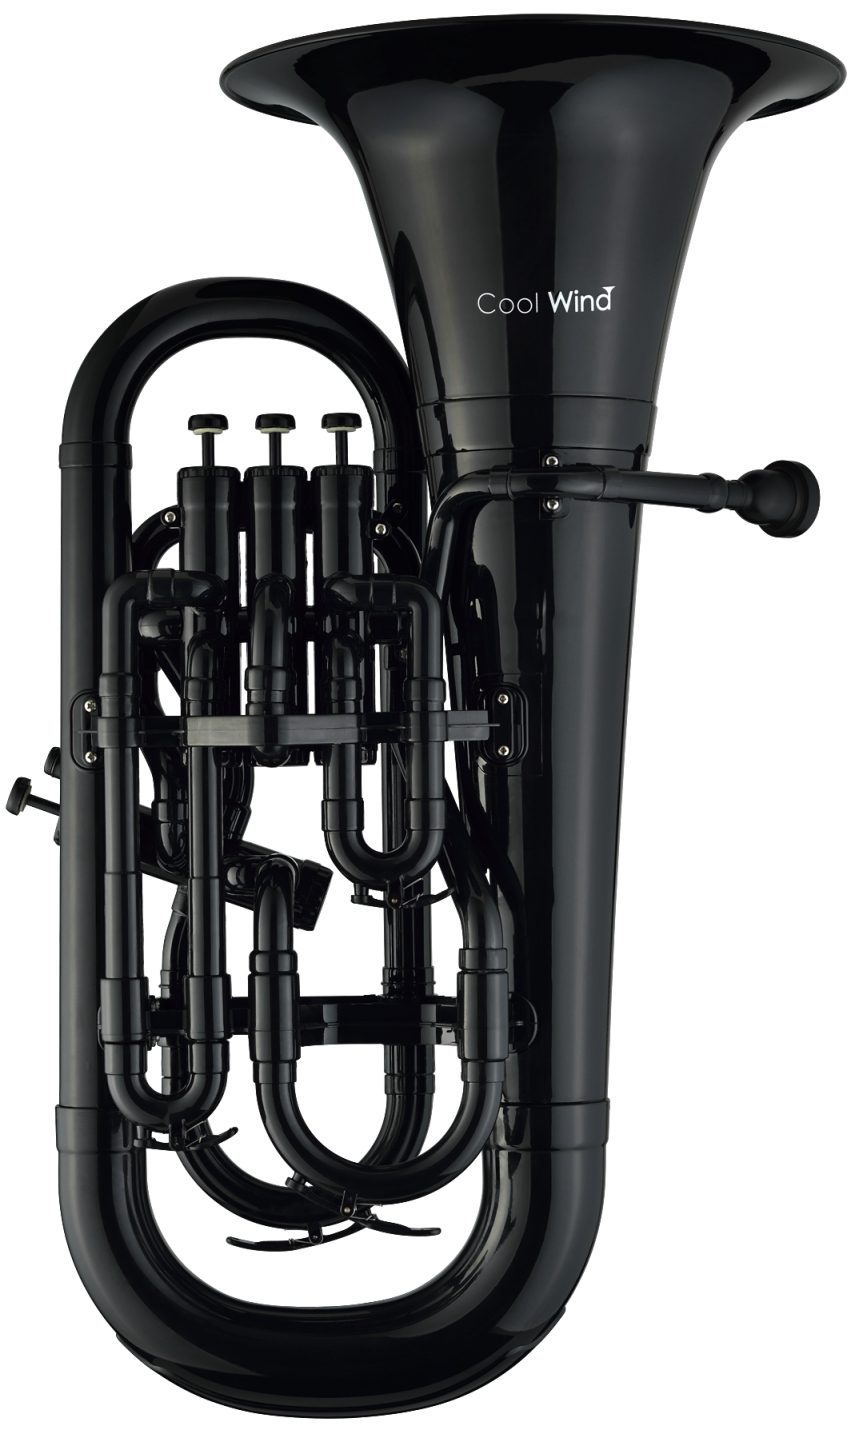 musik markt bad saulgau coolwind euphonium schwarz g nstig einkaufen in bad saulgau. Black Bedroom Furniture Sets. Home Design Ideas